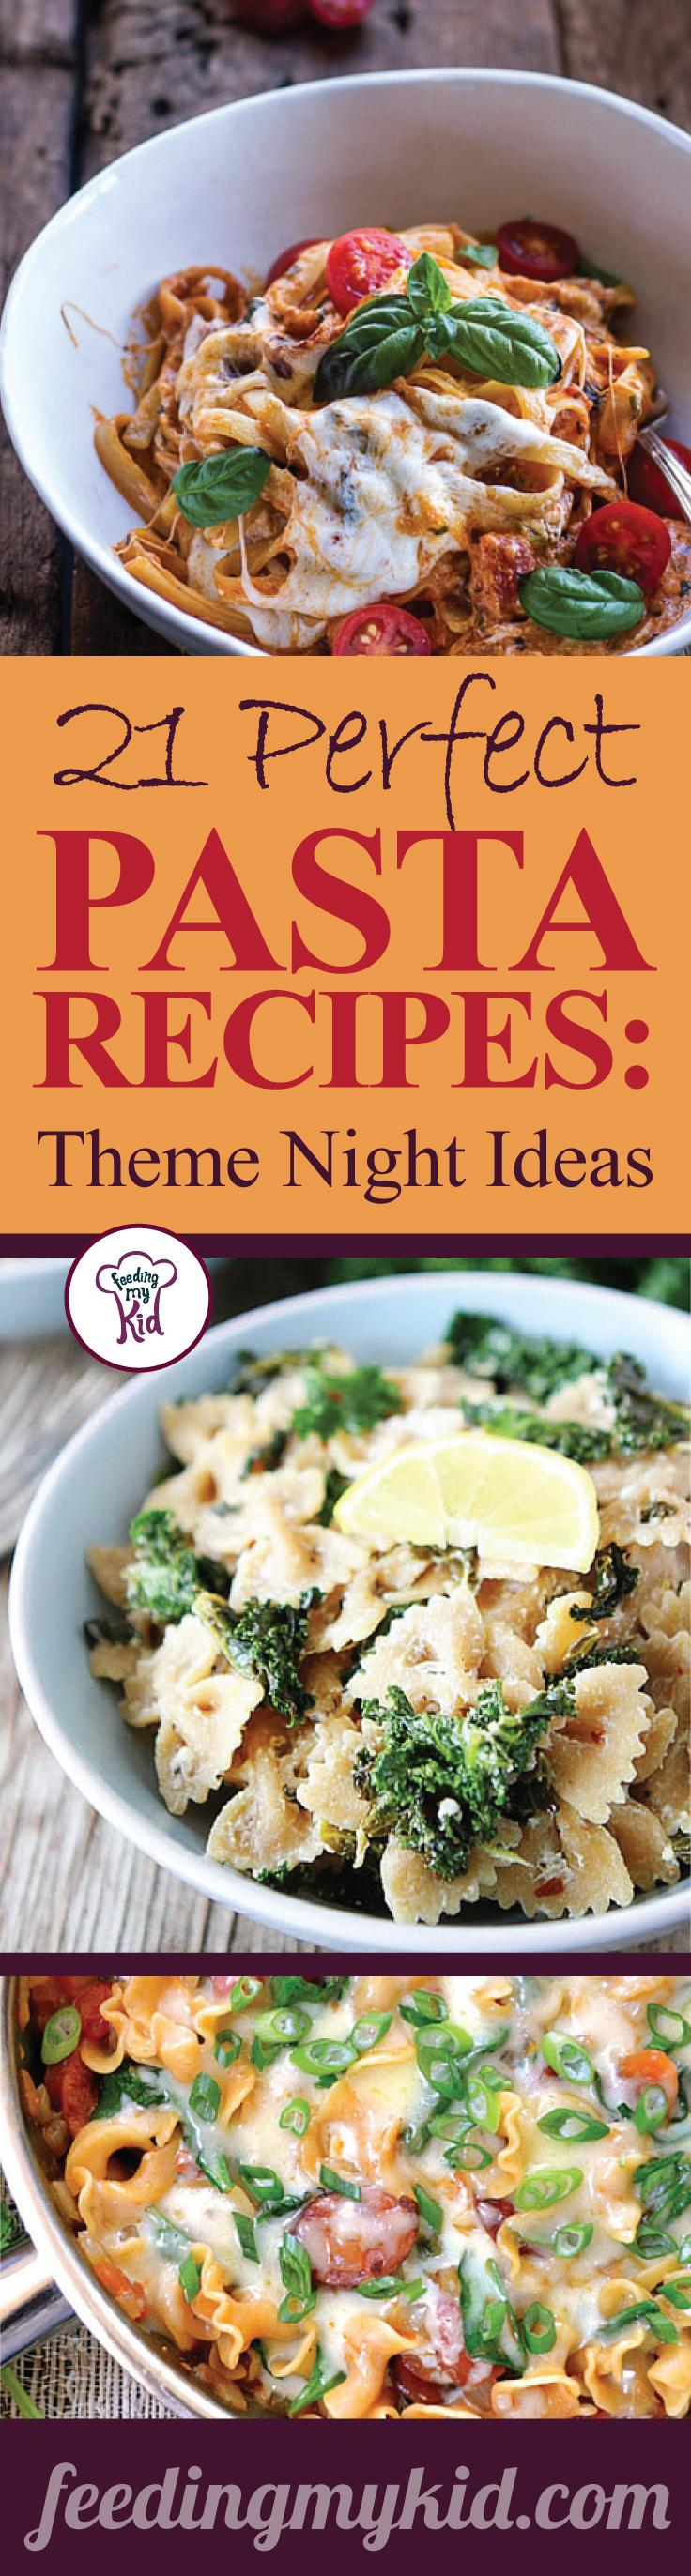 This is a must pin! You'll want to try these great pasta recipes. Feeding My Kid is a great website for parents, filled with all the information you need about how to raise your kids, from healthy tips to nutritious recipes. #pasta #mealtime #themenight